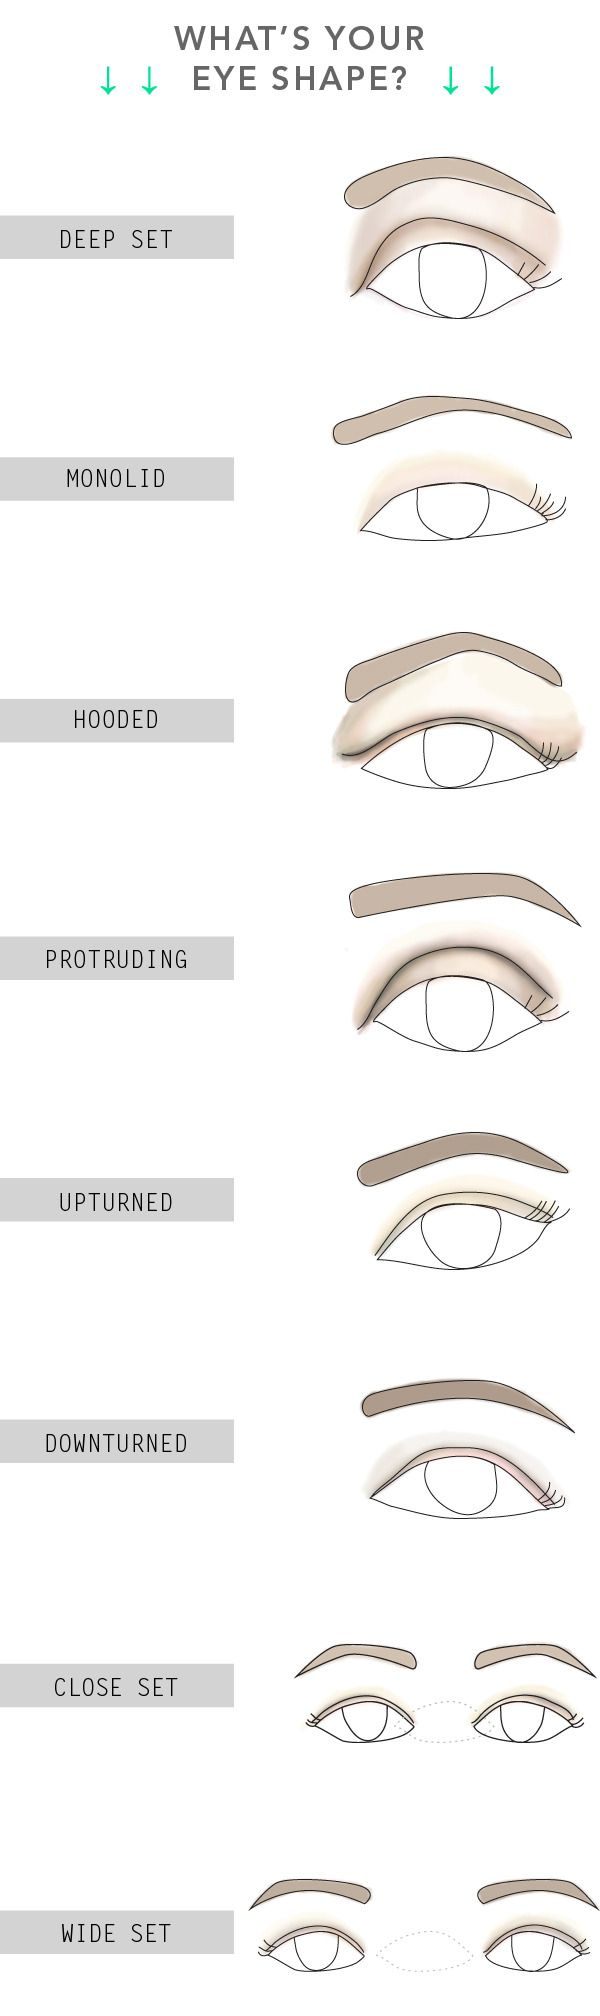 Go to this website to find out how to properly apply eyeshadow and liner to best flatter your natural eye shape. Good to know!